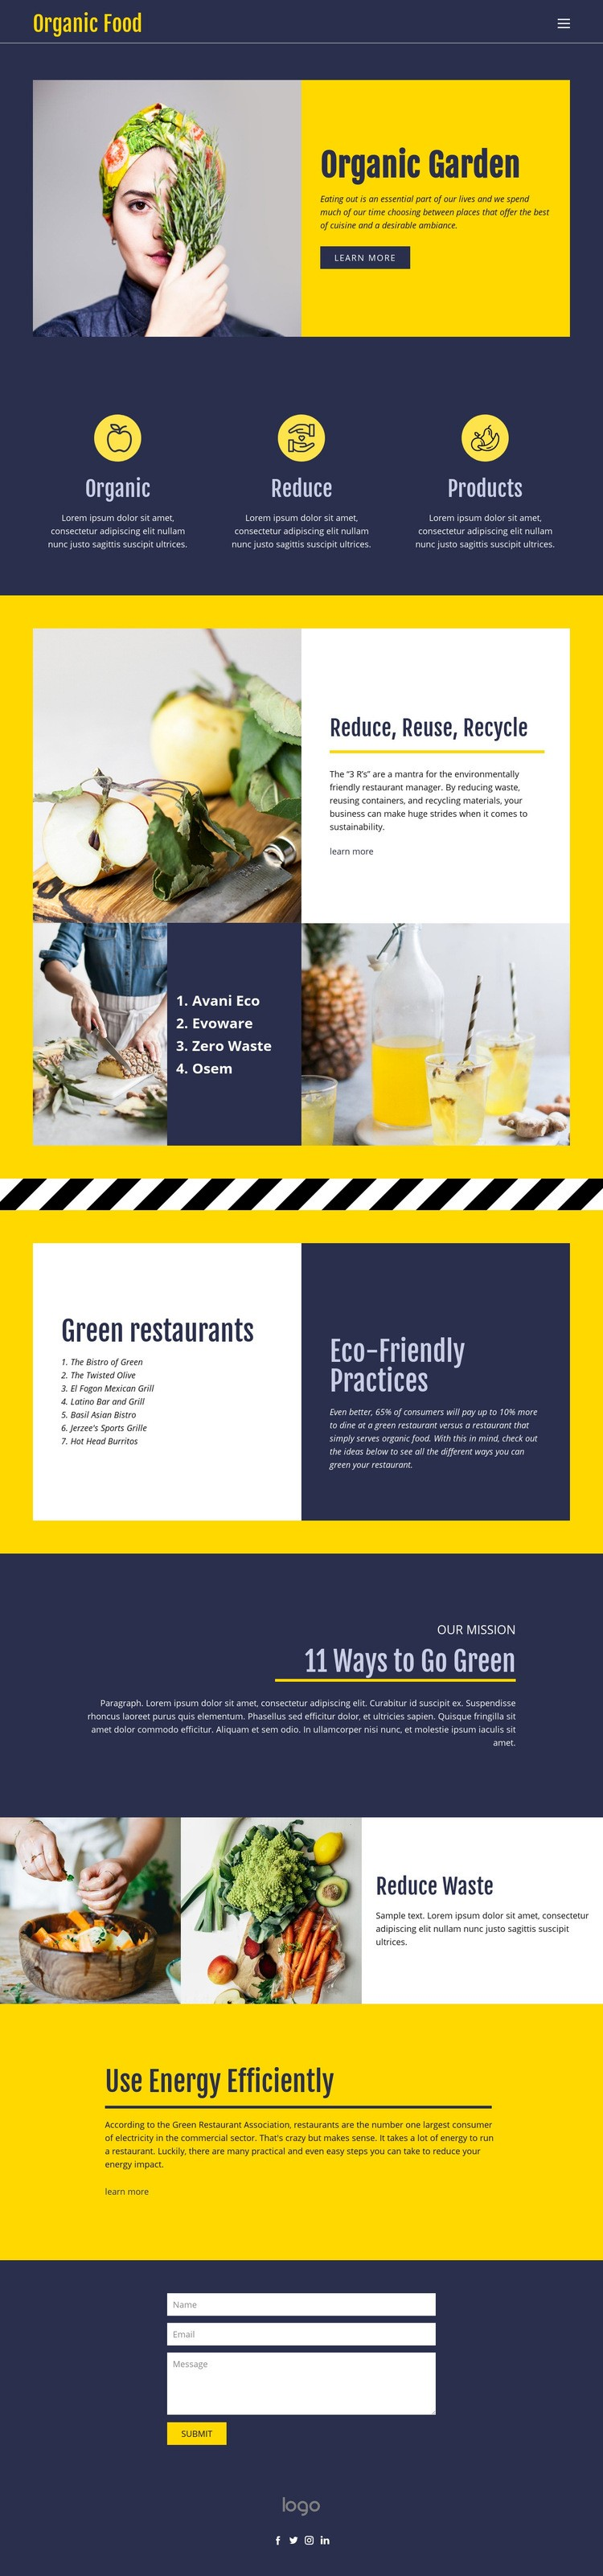 Eating essentials for food Html Code Example